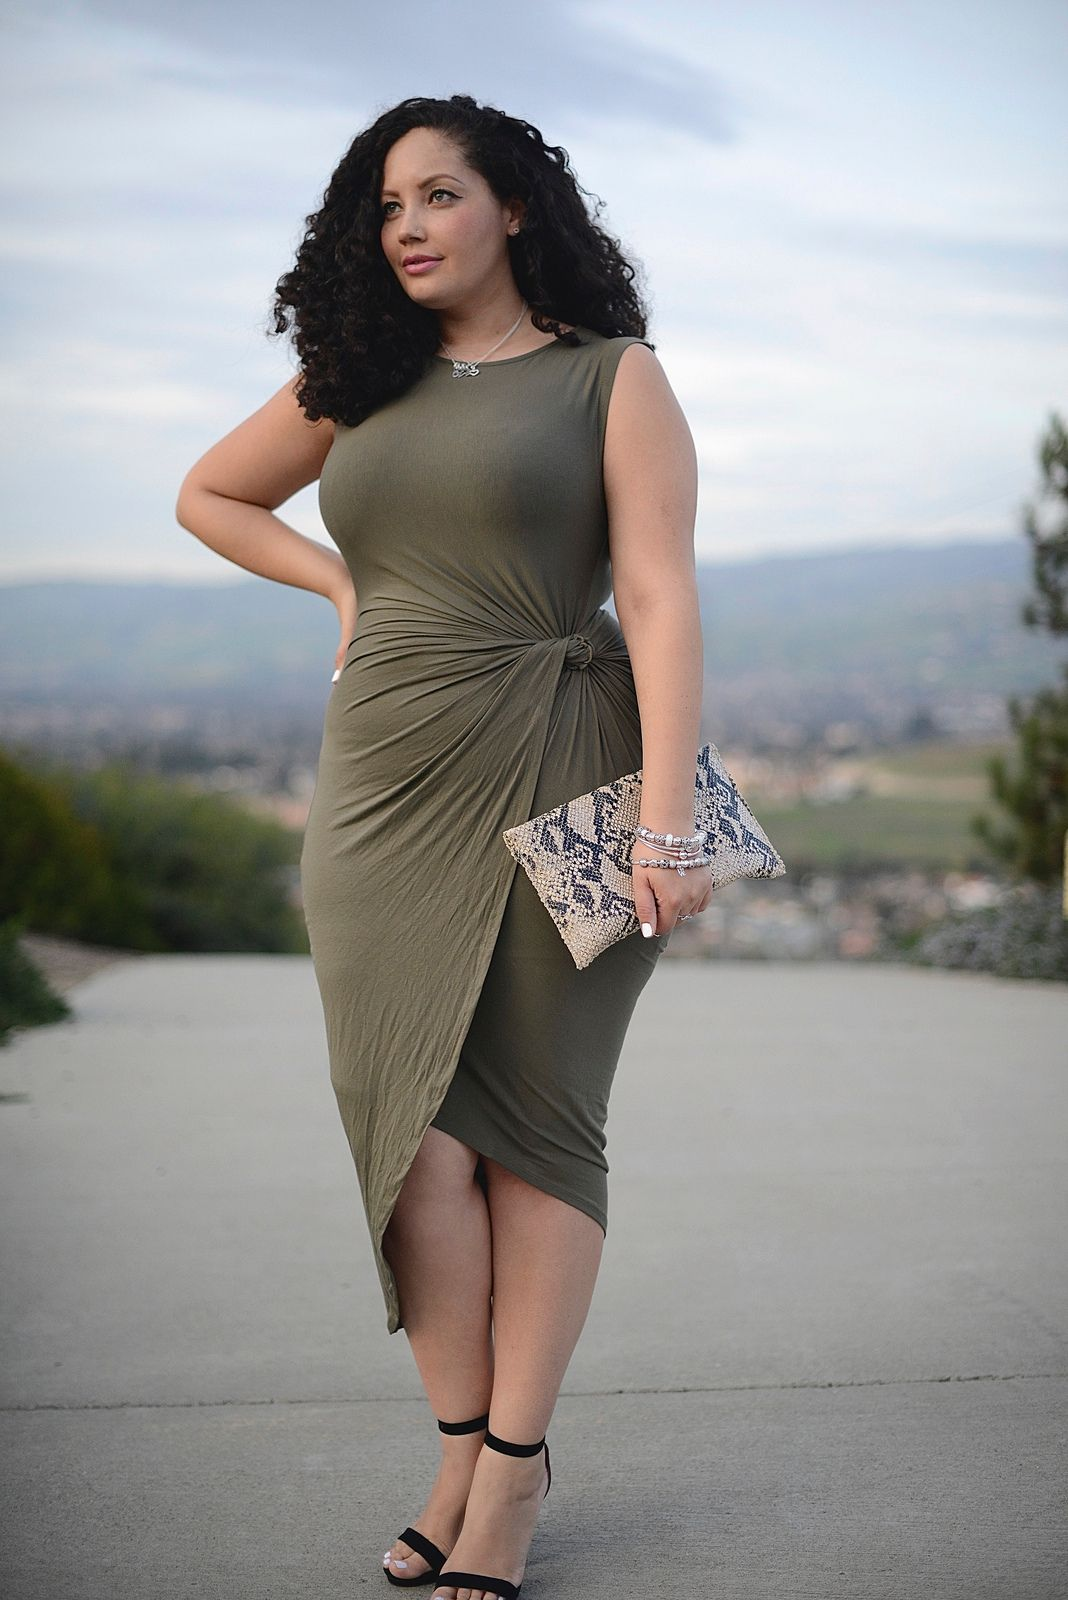 Plus size women dating